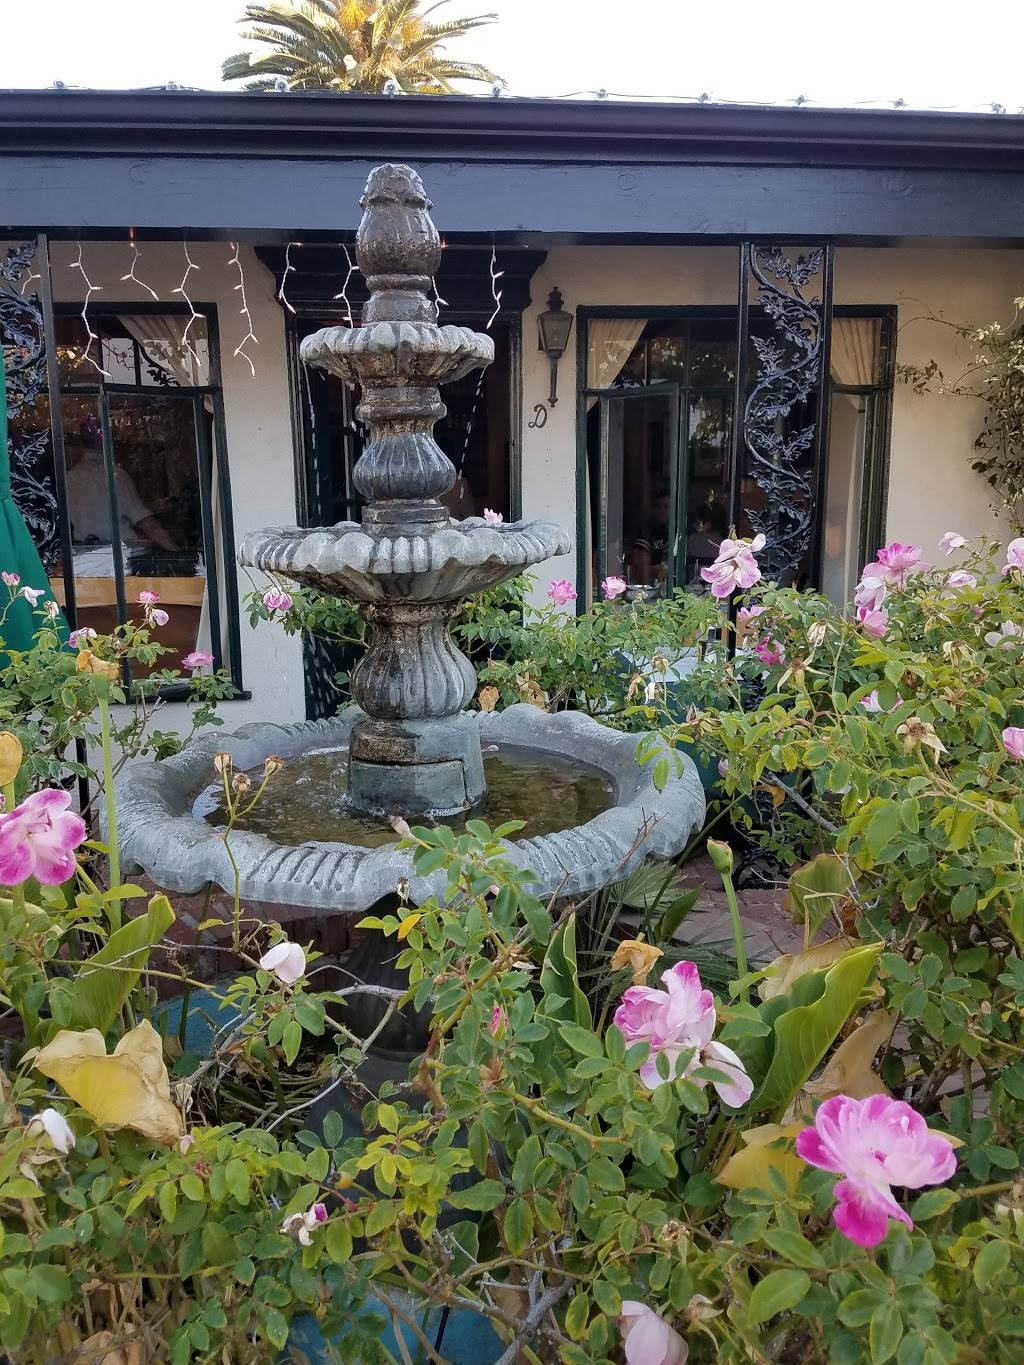 Beech Street Cafe   cafe   863 N Swarthmore Ave, Pacific Palisades, CA 90272, USA   3105731940 OR +1 310-573-1940